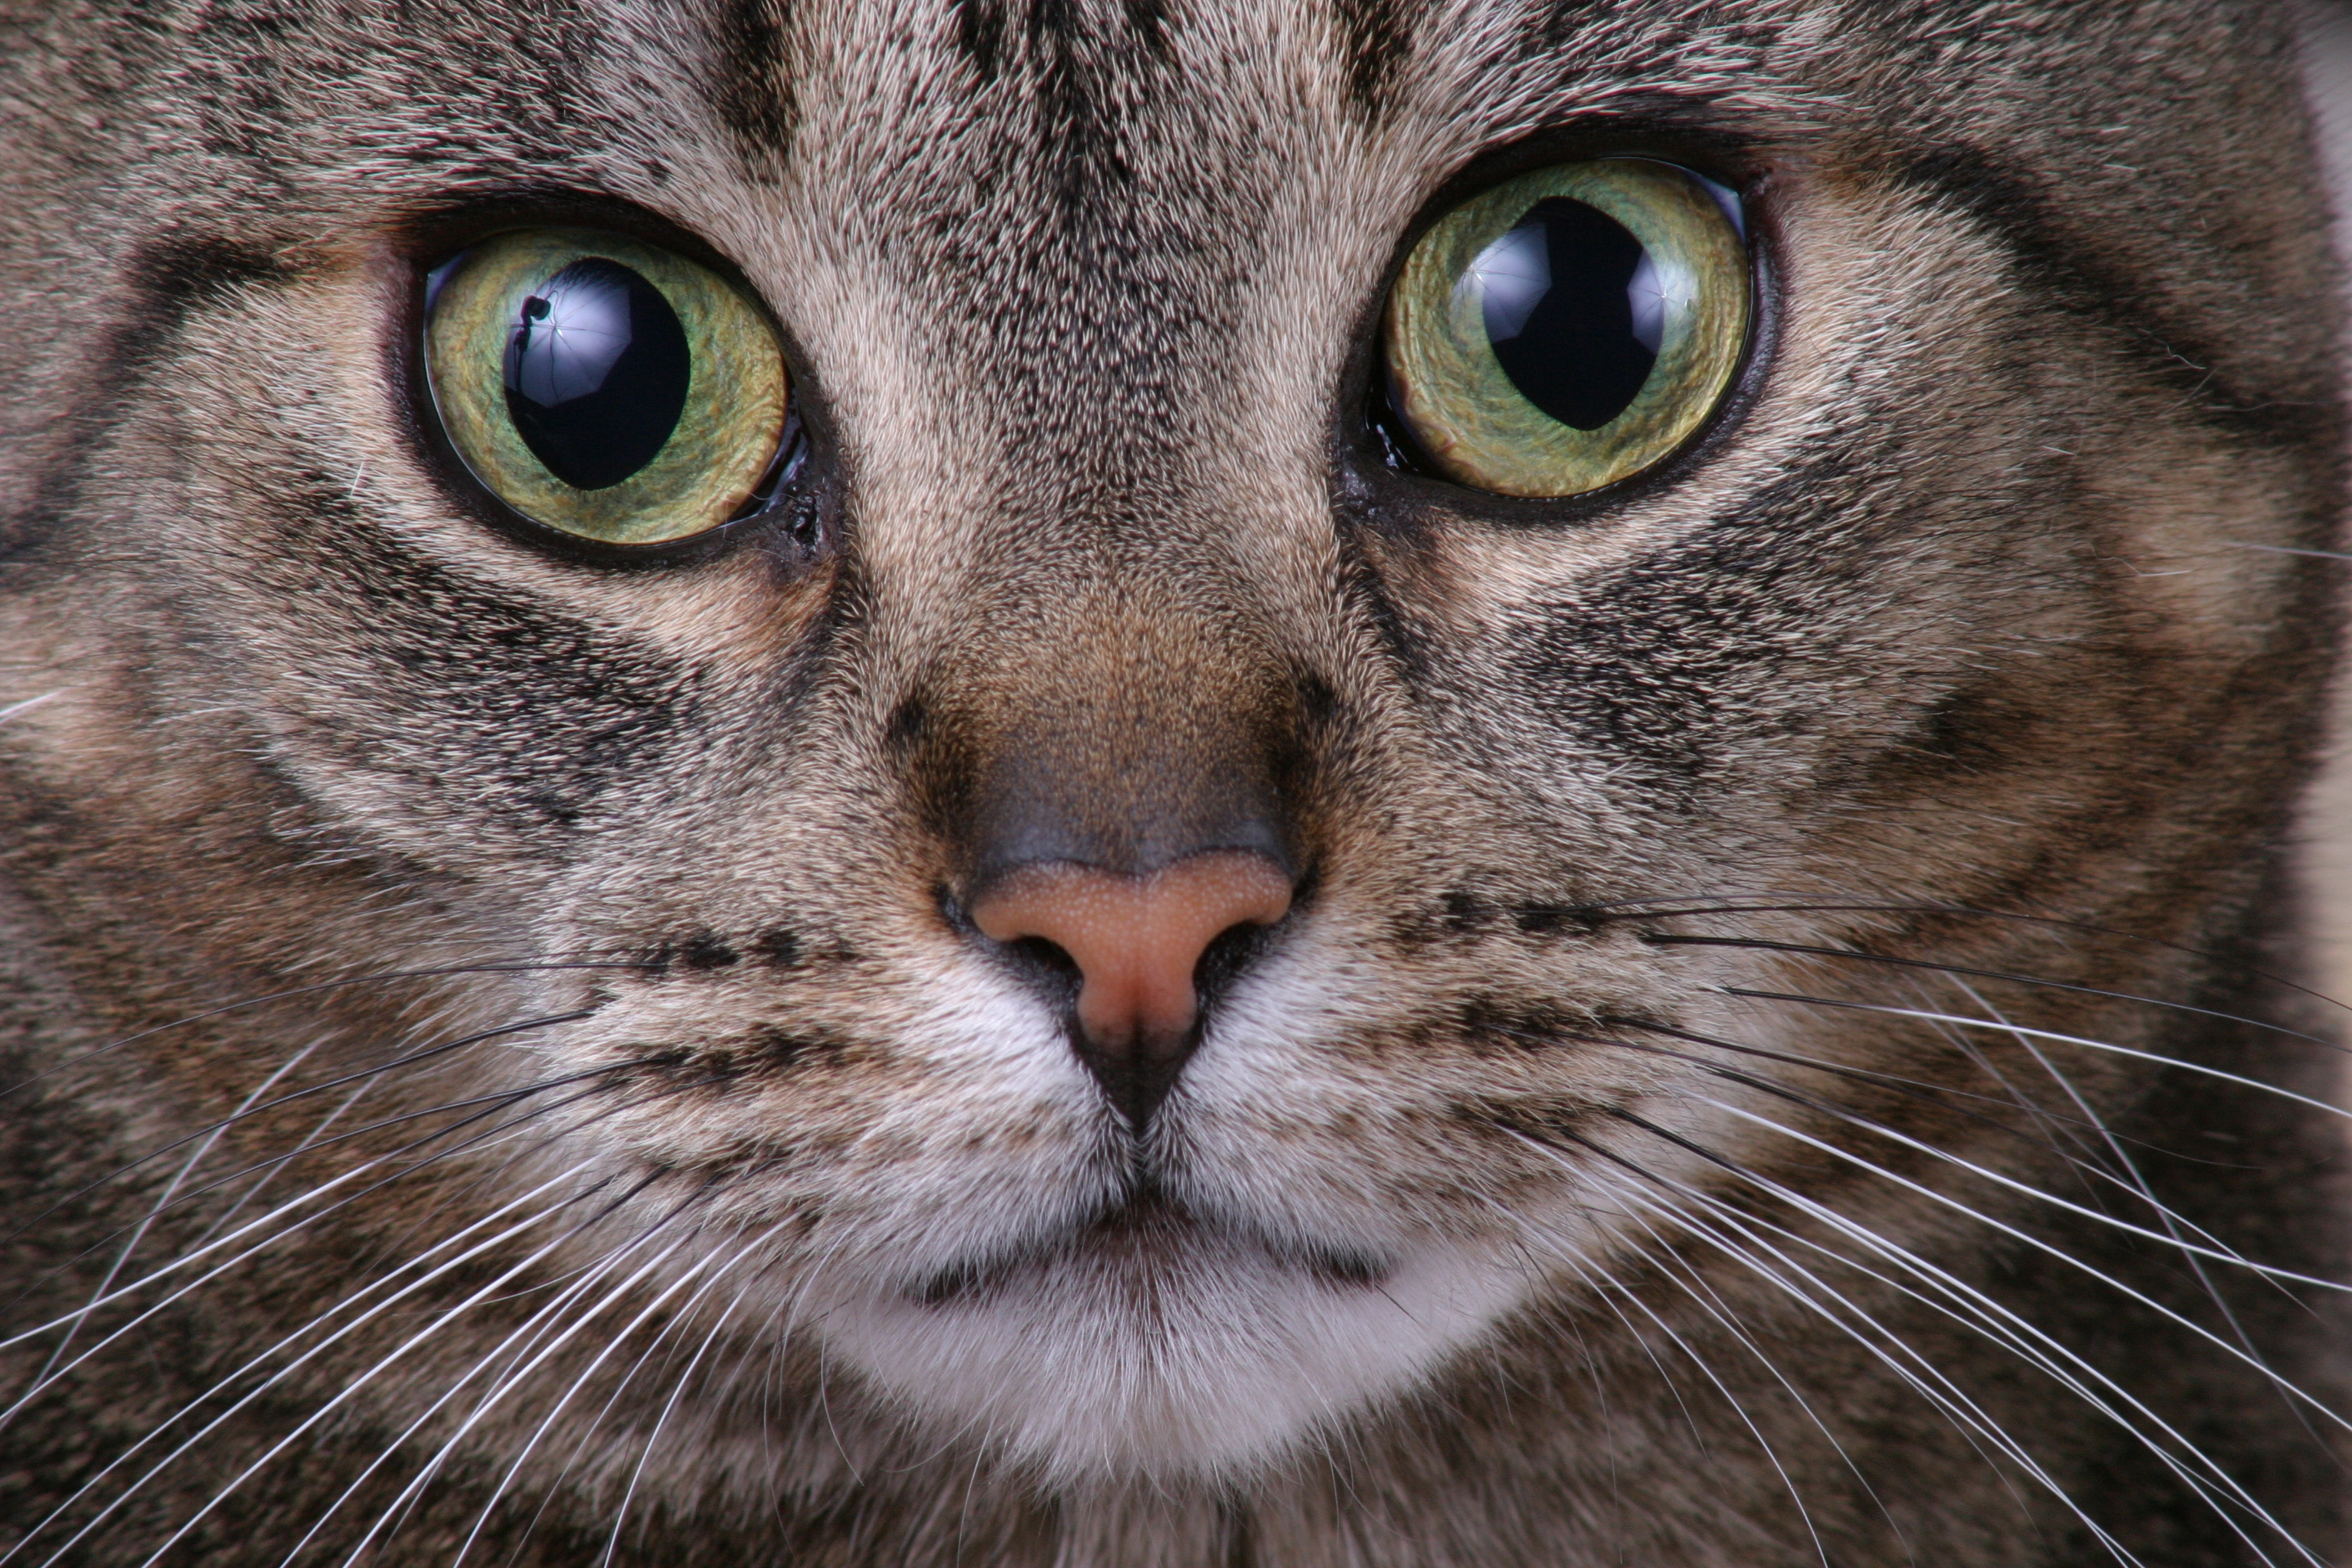 Close Up Cat Wallpaper | 3072x2048 | ID:26074 - WallpaperVortex.com